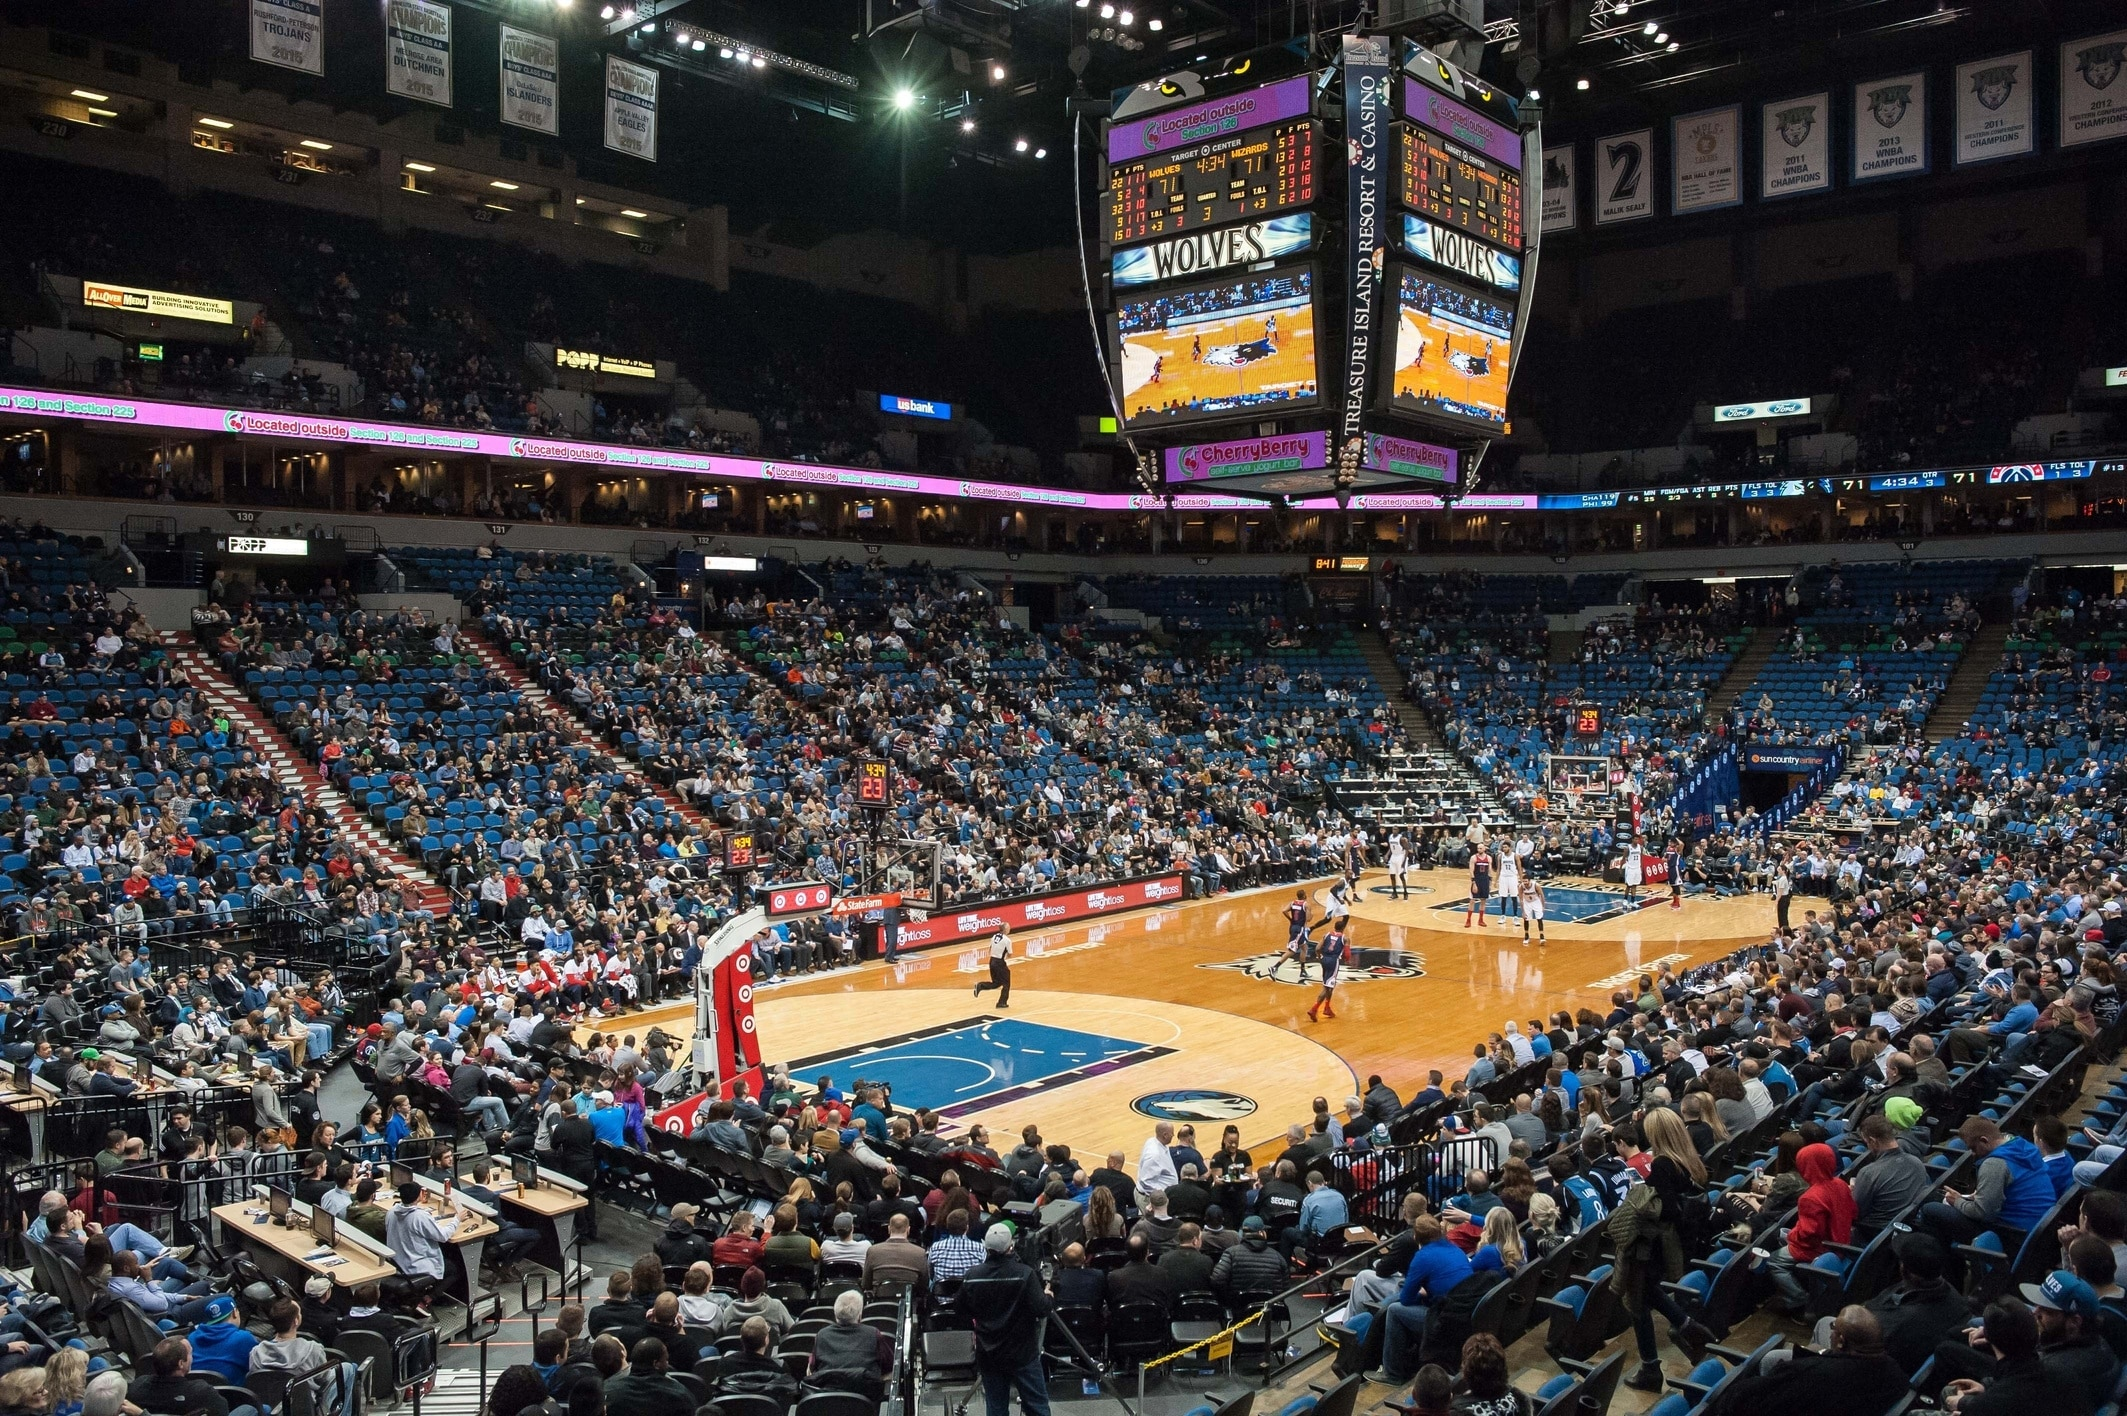 Trail Blazers vs. Timberwolves, Target Center